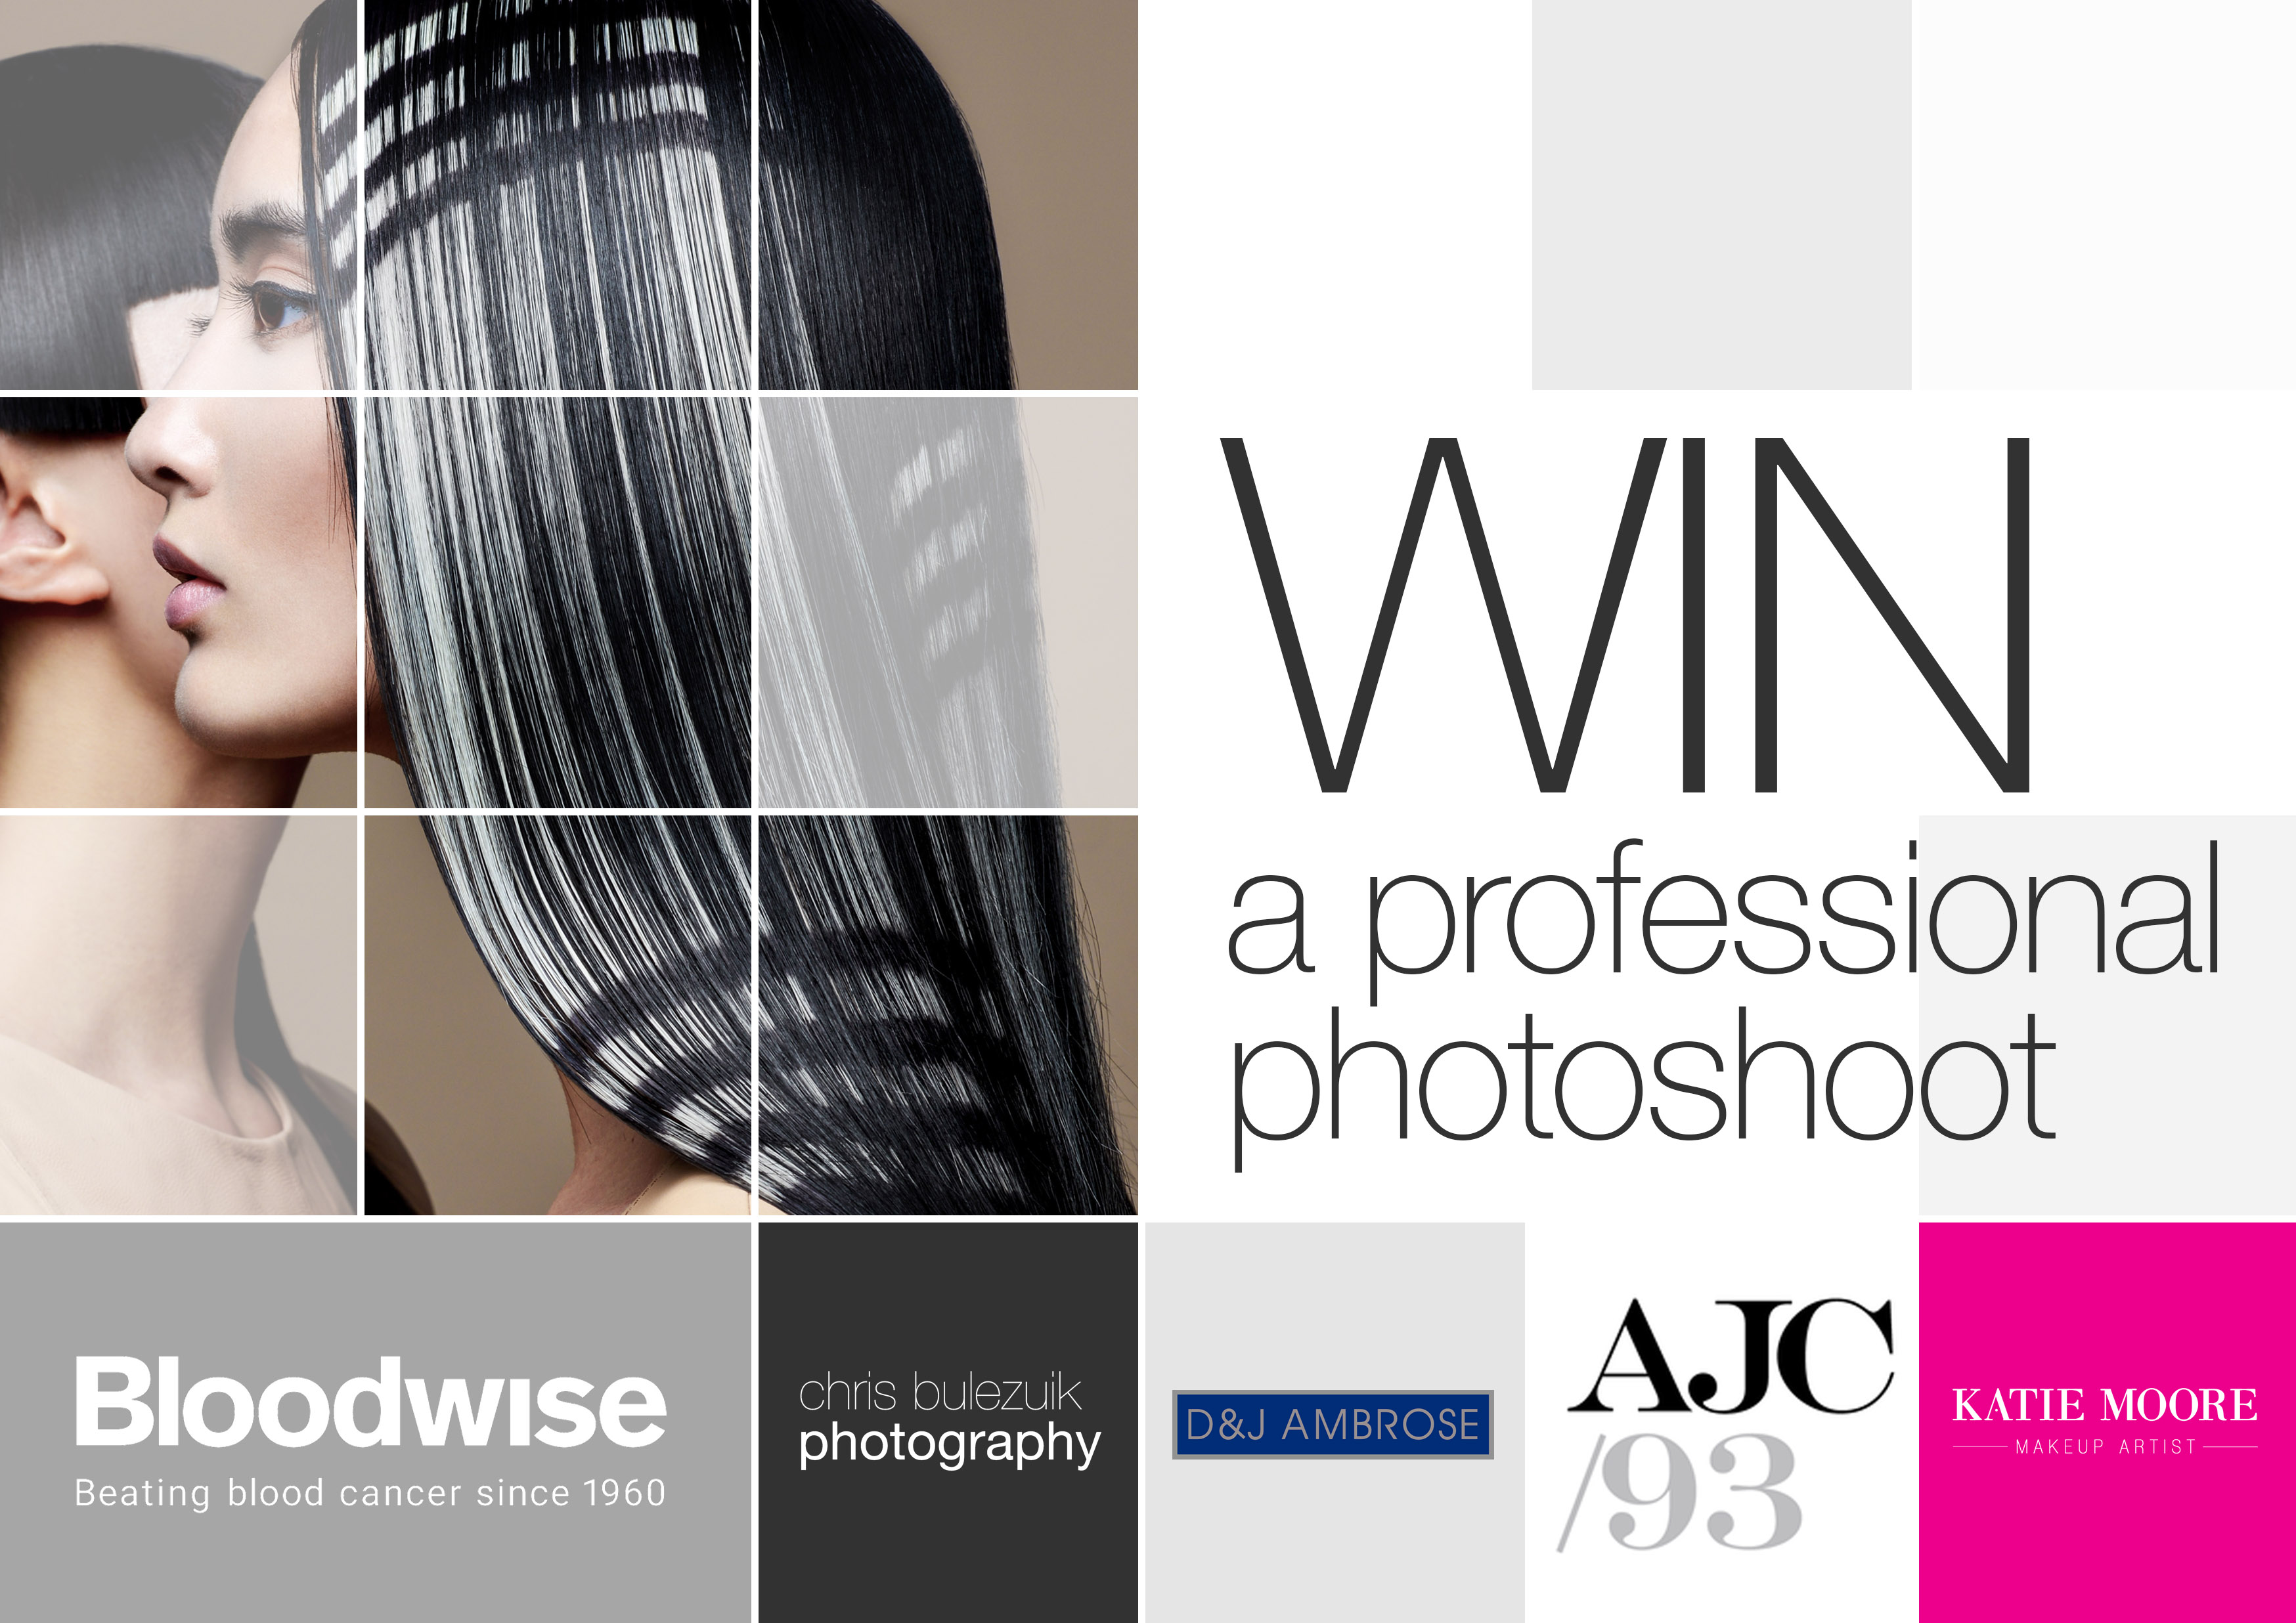 WIN a professional photoshoot worth £8000!